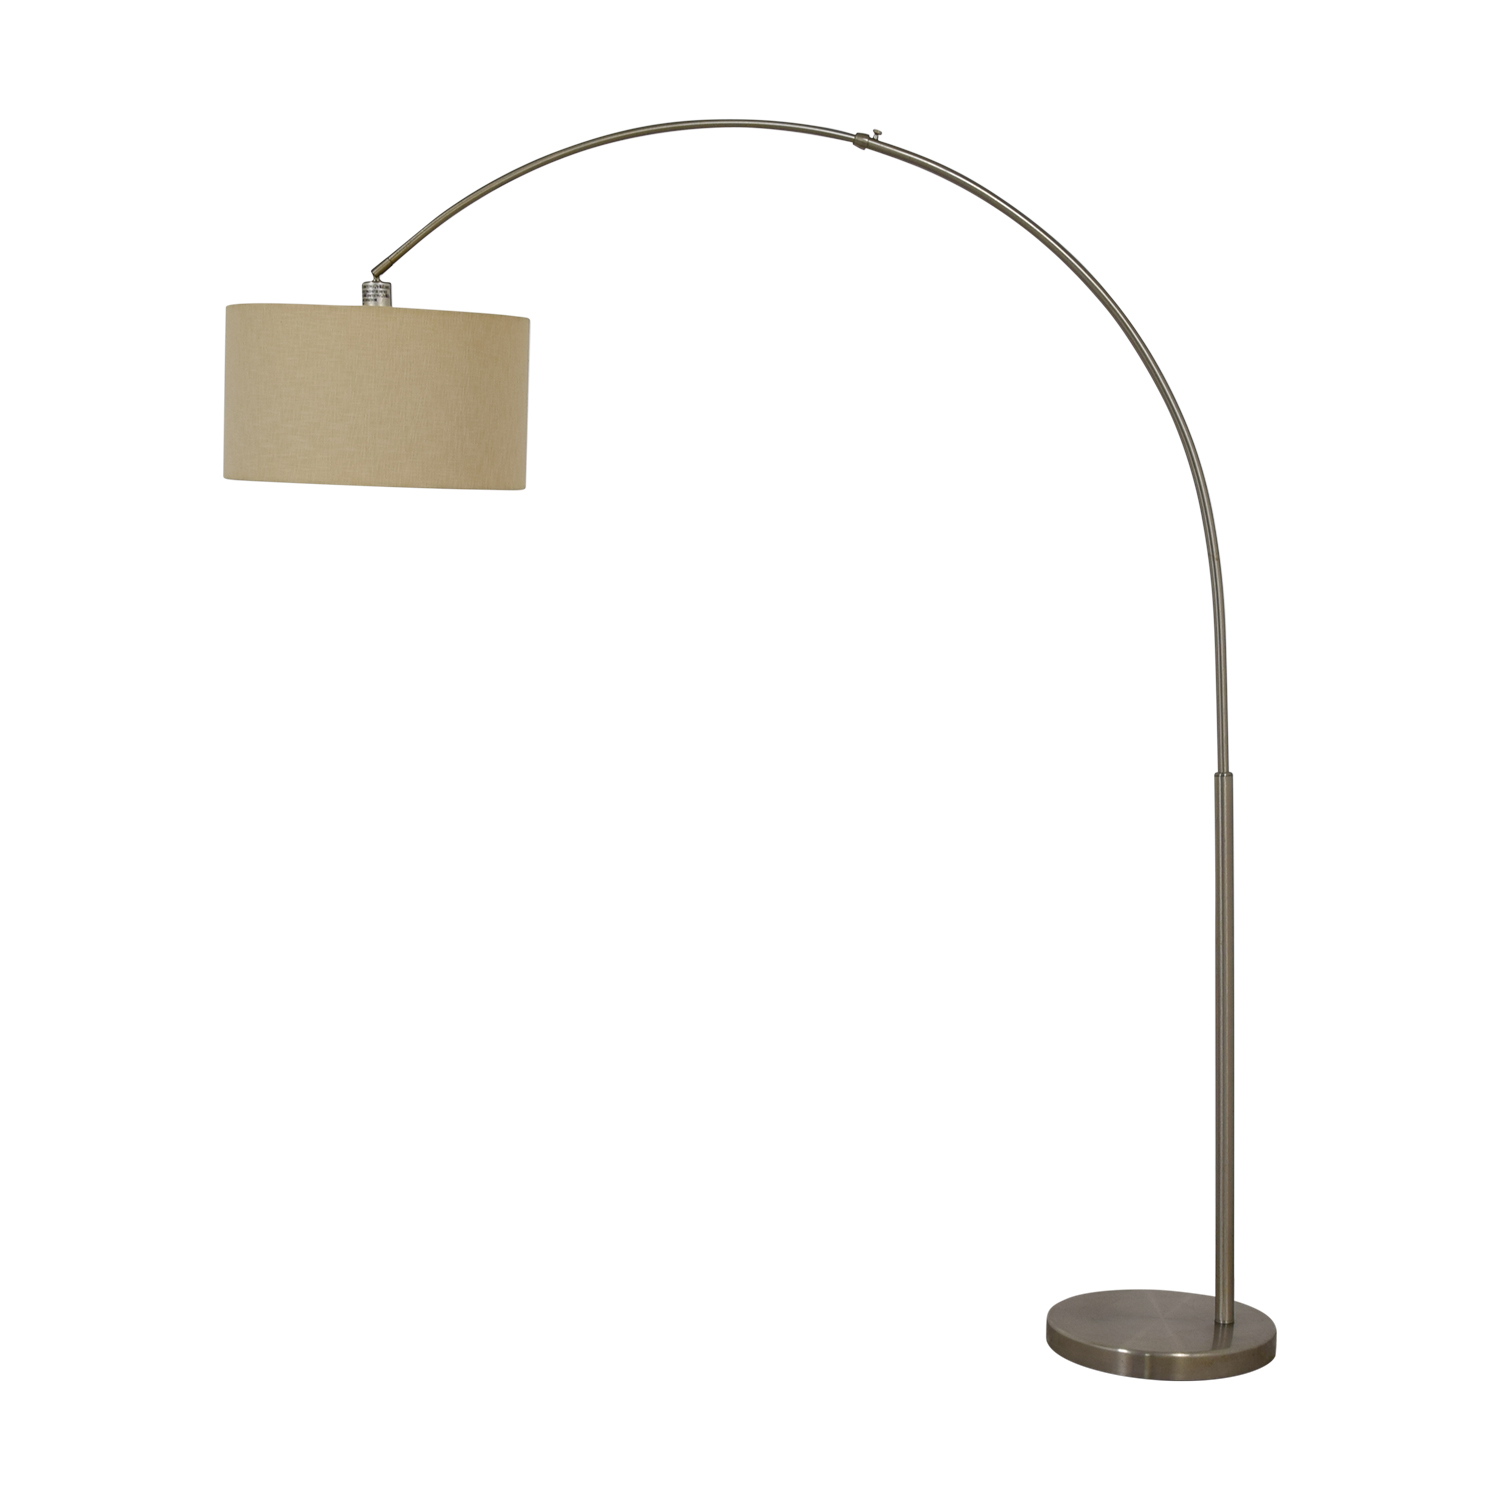 CB2 CB2 Big Dipper Arc Brushed Nickel Floor Lamp for sale